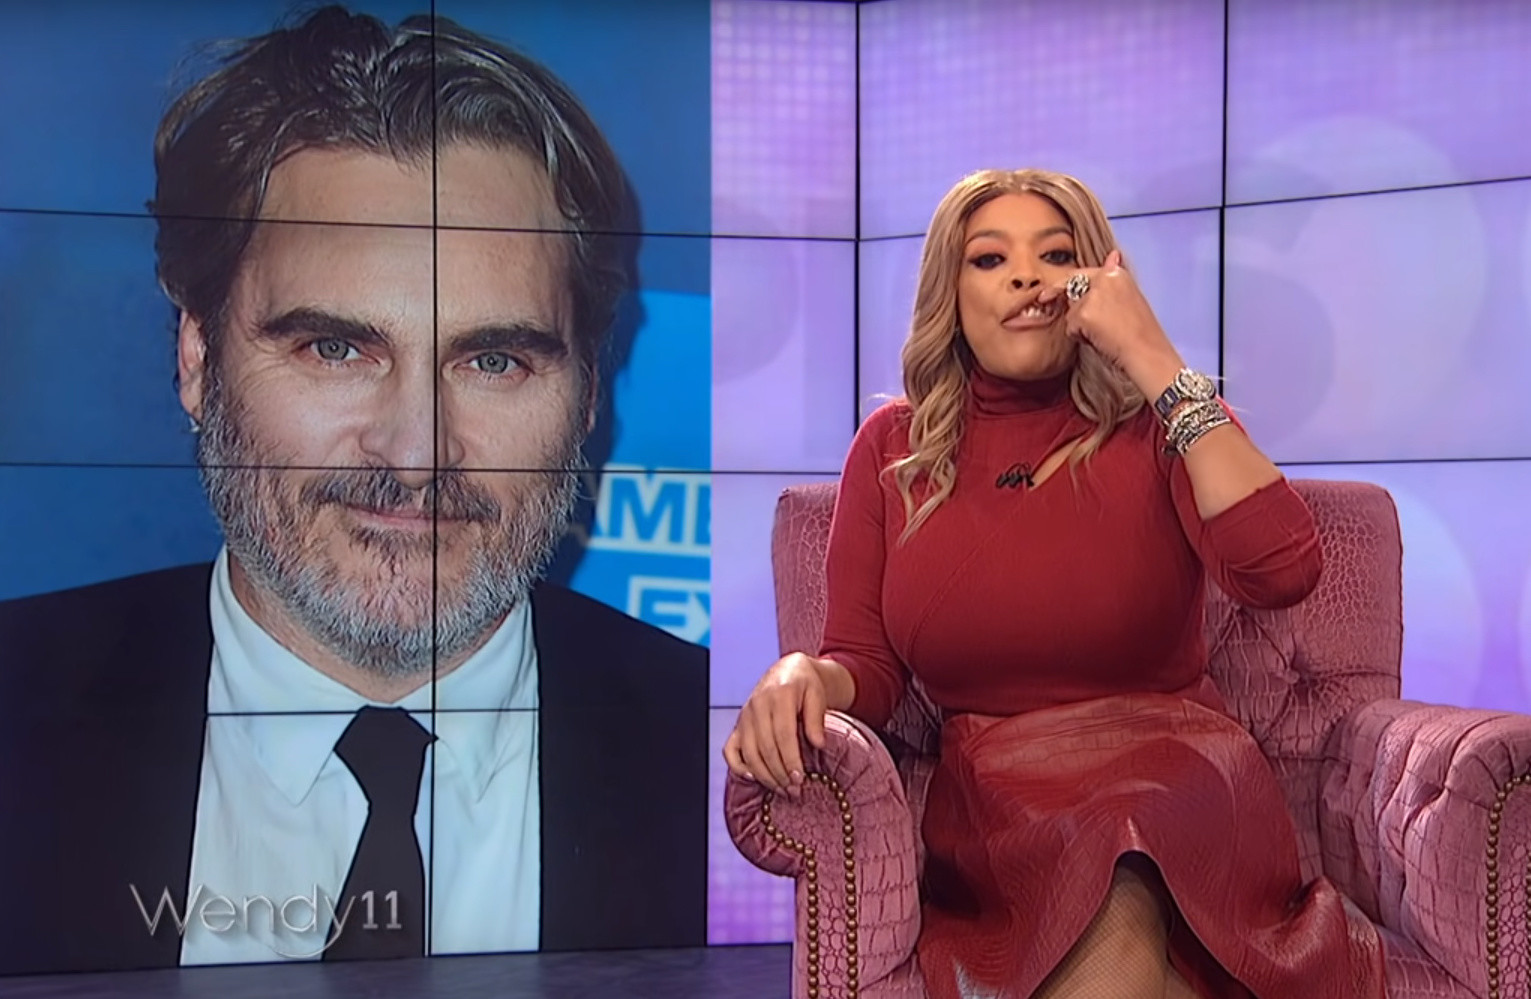 Wendy Williams apologizes after making Joaquin Phoenix 'cleft lip' comments